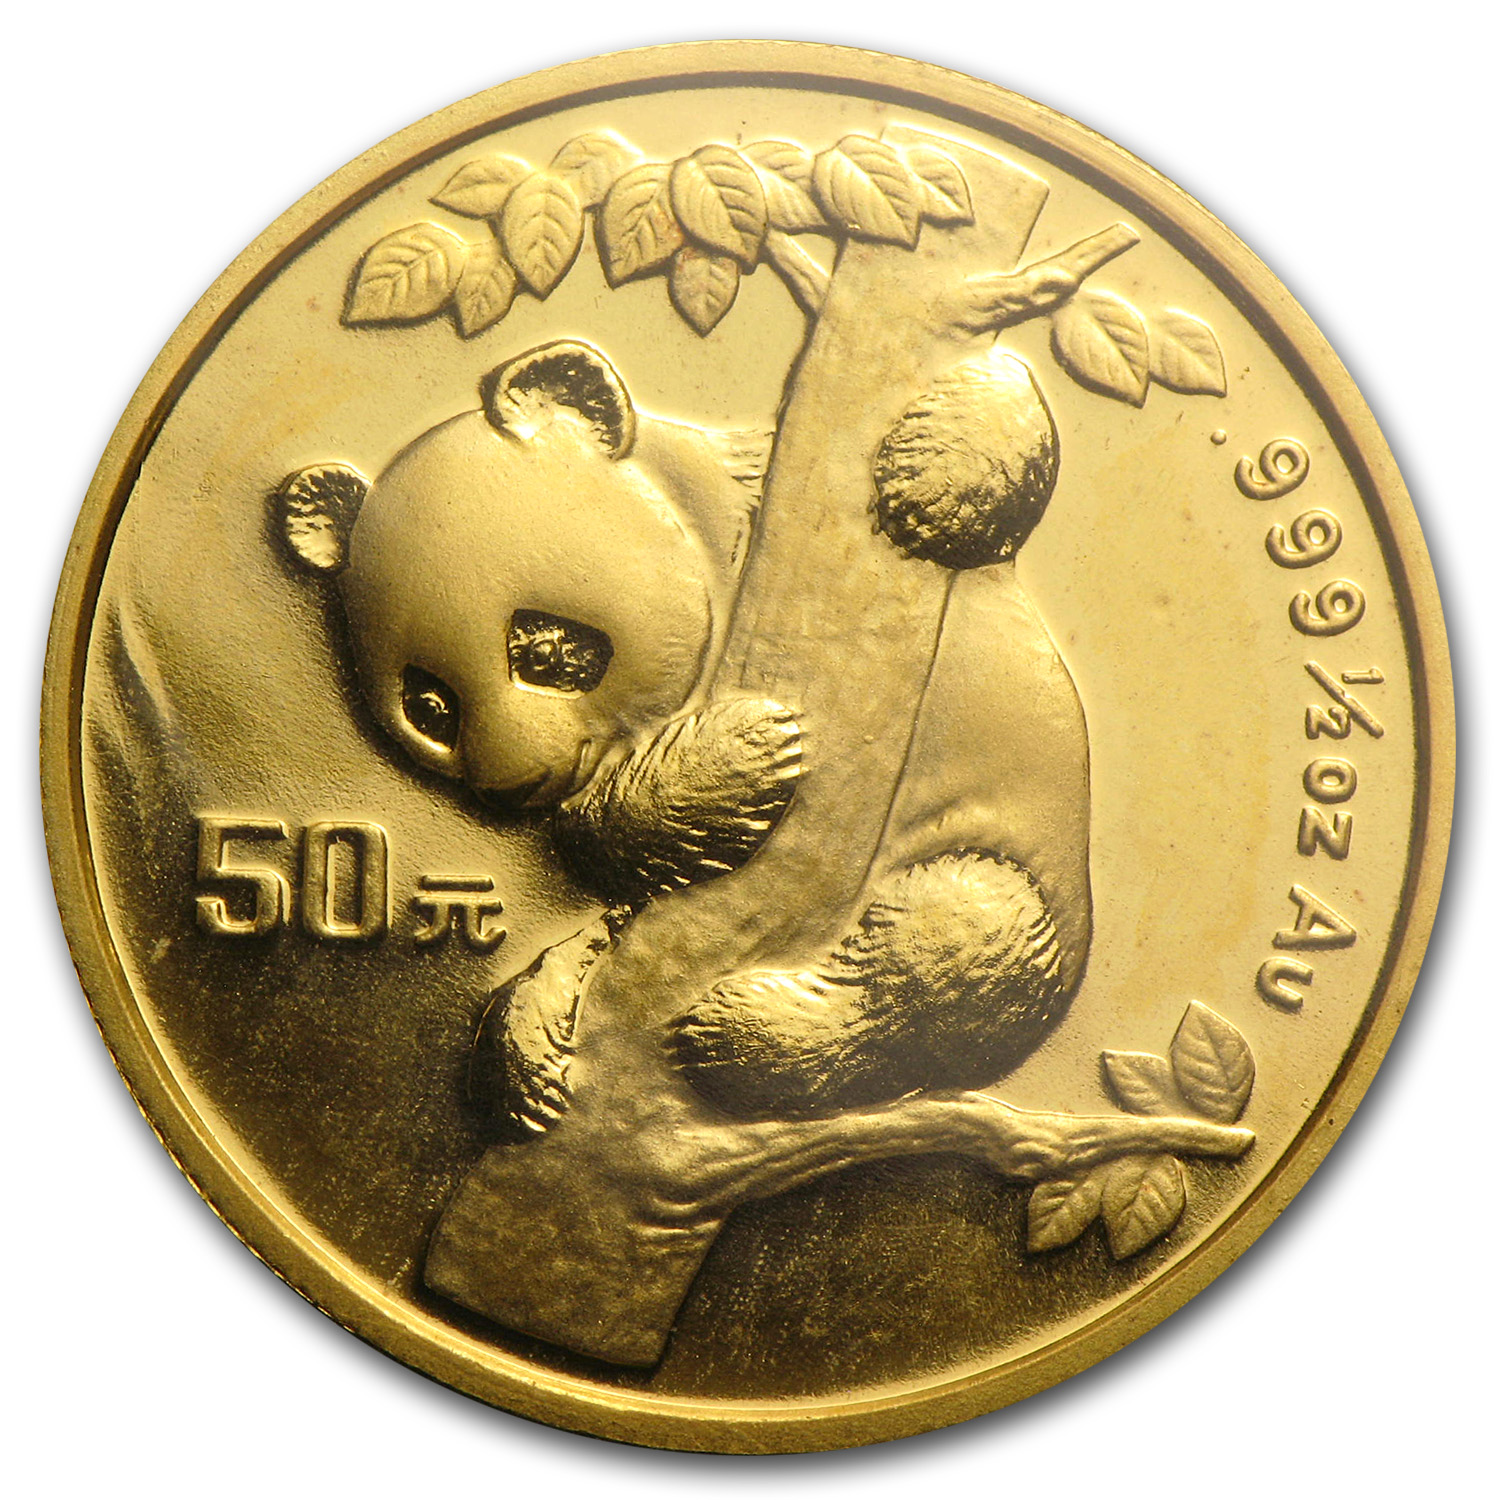 1996 1/2 oz Gold Chinese Panda Small Date BU (Sealed)